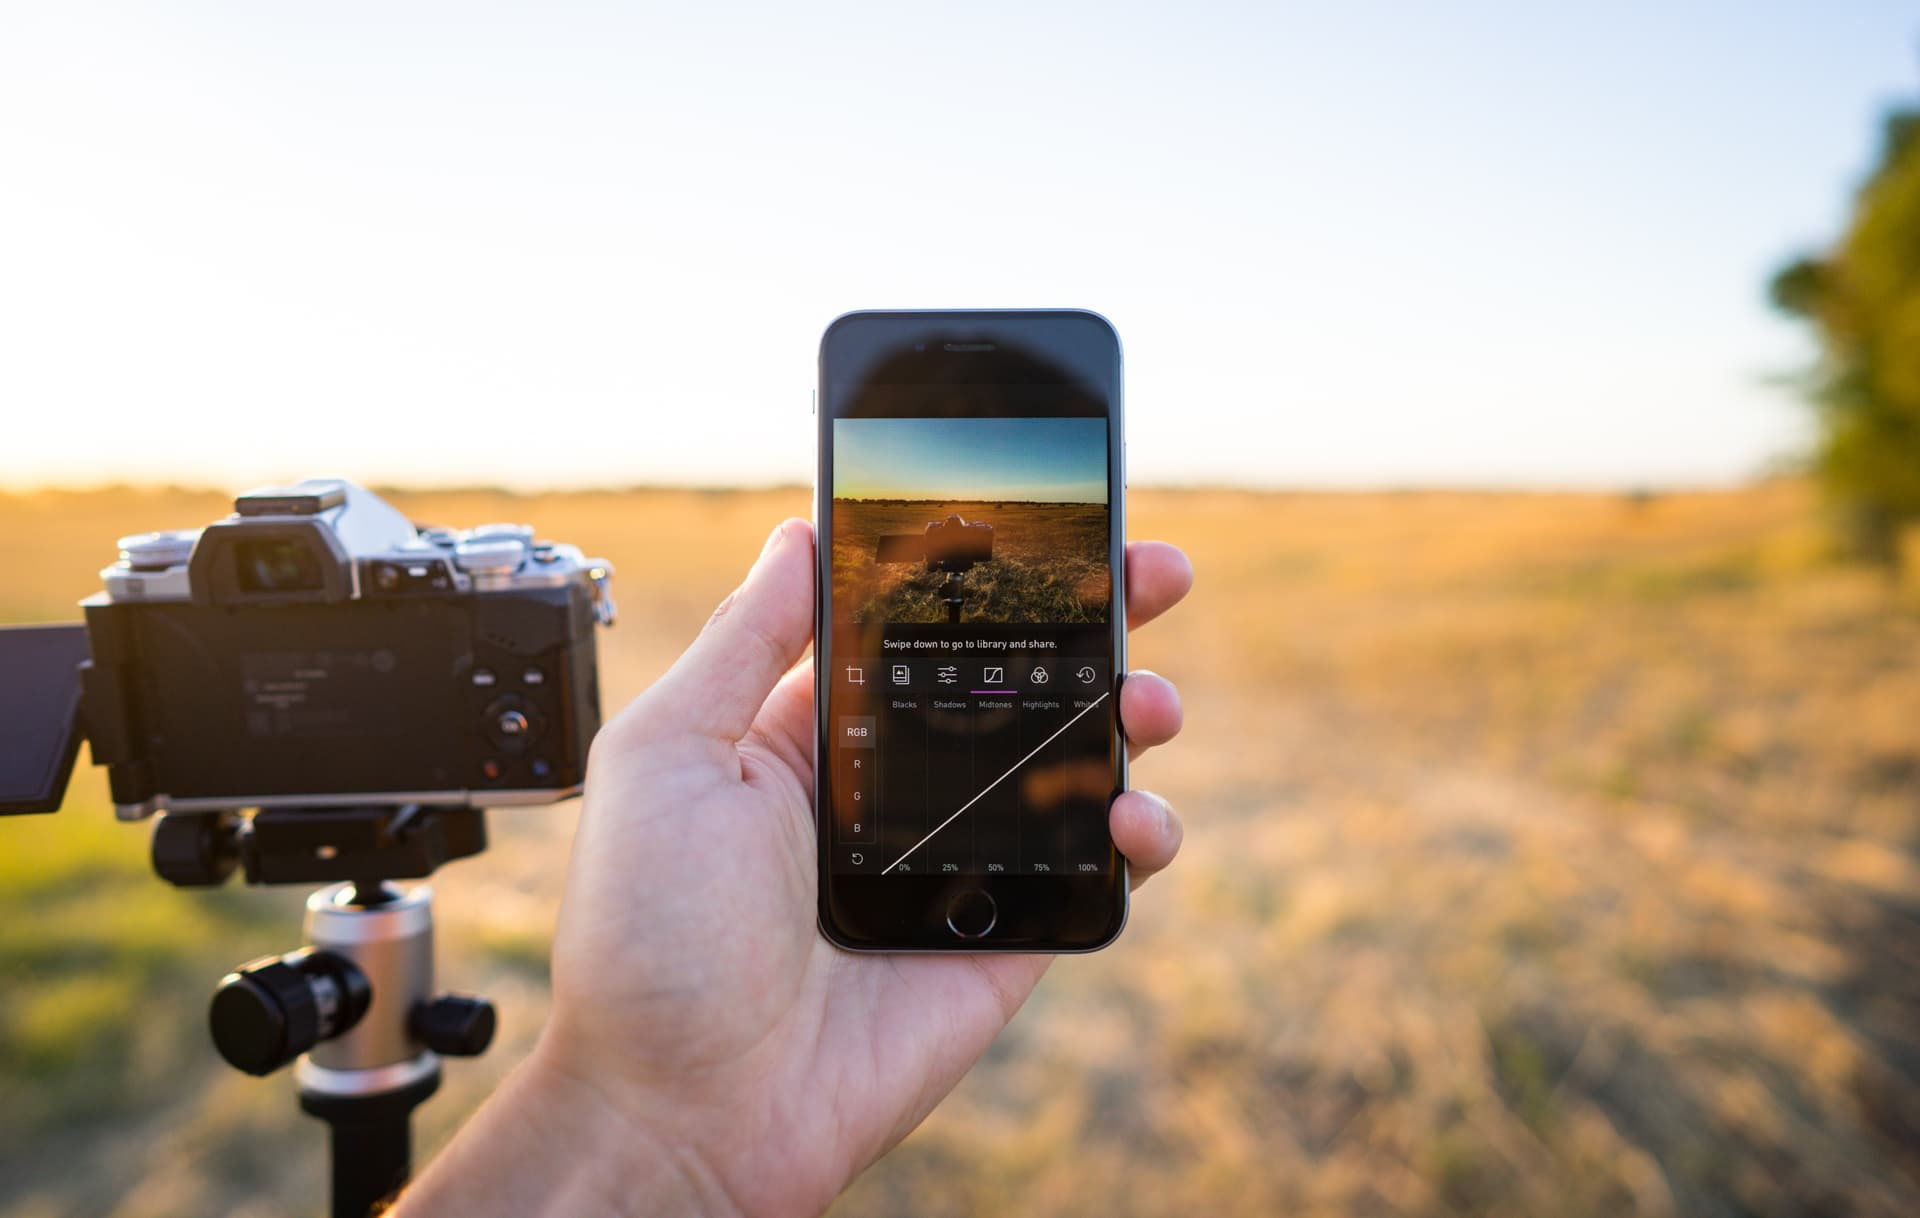 The best photo editing app for the iPhone